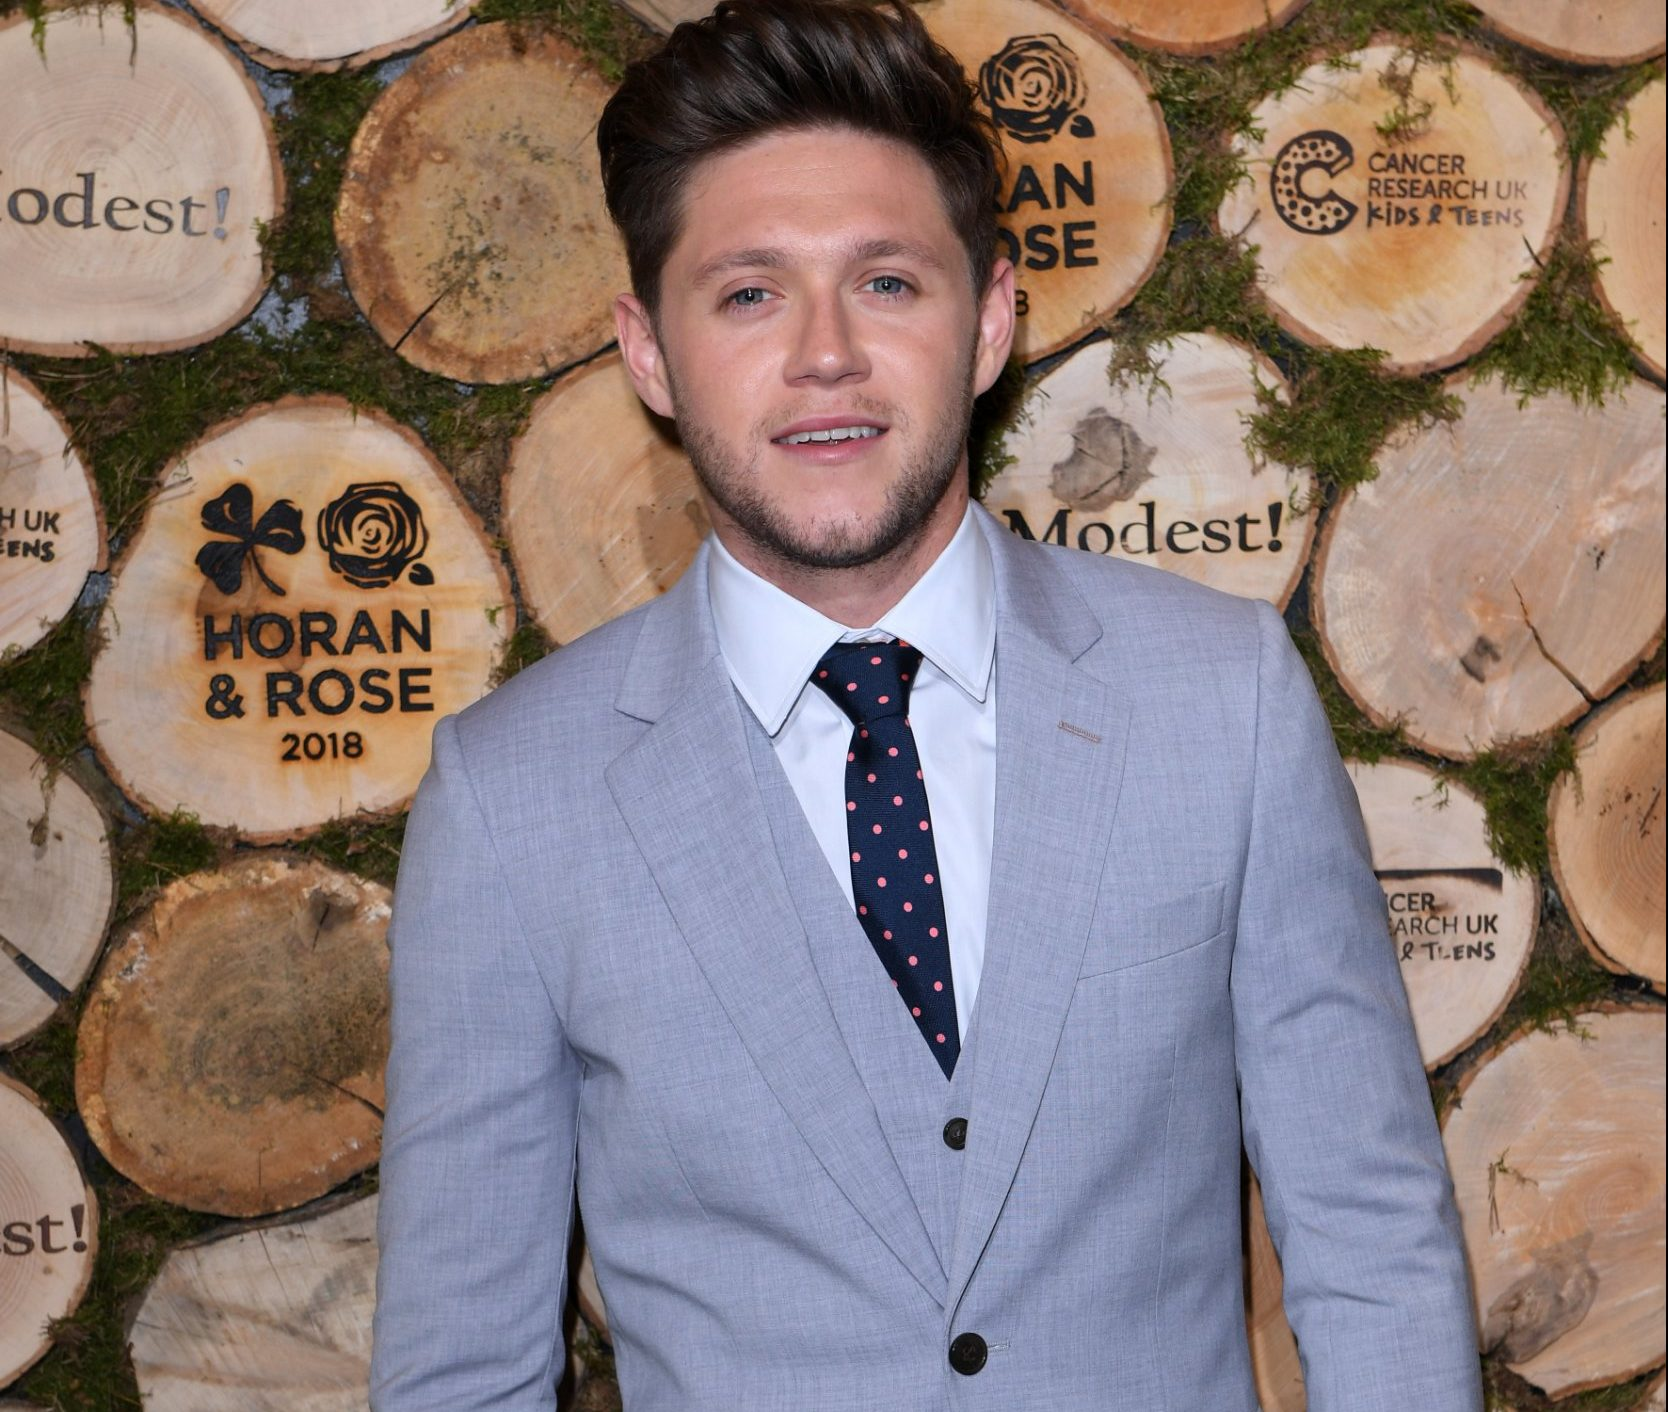 Mandatory Credit: Photo by David Fisher/REX/Shutterstock (9725478f) Niall Horan The Horan and Rose Charity Event, The Grove, Watford, UK - 23 Jun 2018 Launched in May 2016, Horan and Rose is an exclusive two part charity event to raise awareness and funding for Cancer Research UK Kids and Teens. 2016's Horan and Rose Events raised more than an incredible 800,000 GBP, split between Cancer Research UK Kids and Teens, Irish Autism Action and the Kate and Justin Rose Foundation